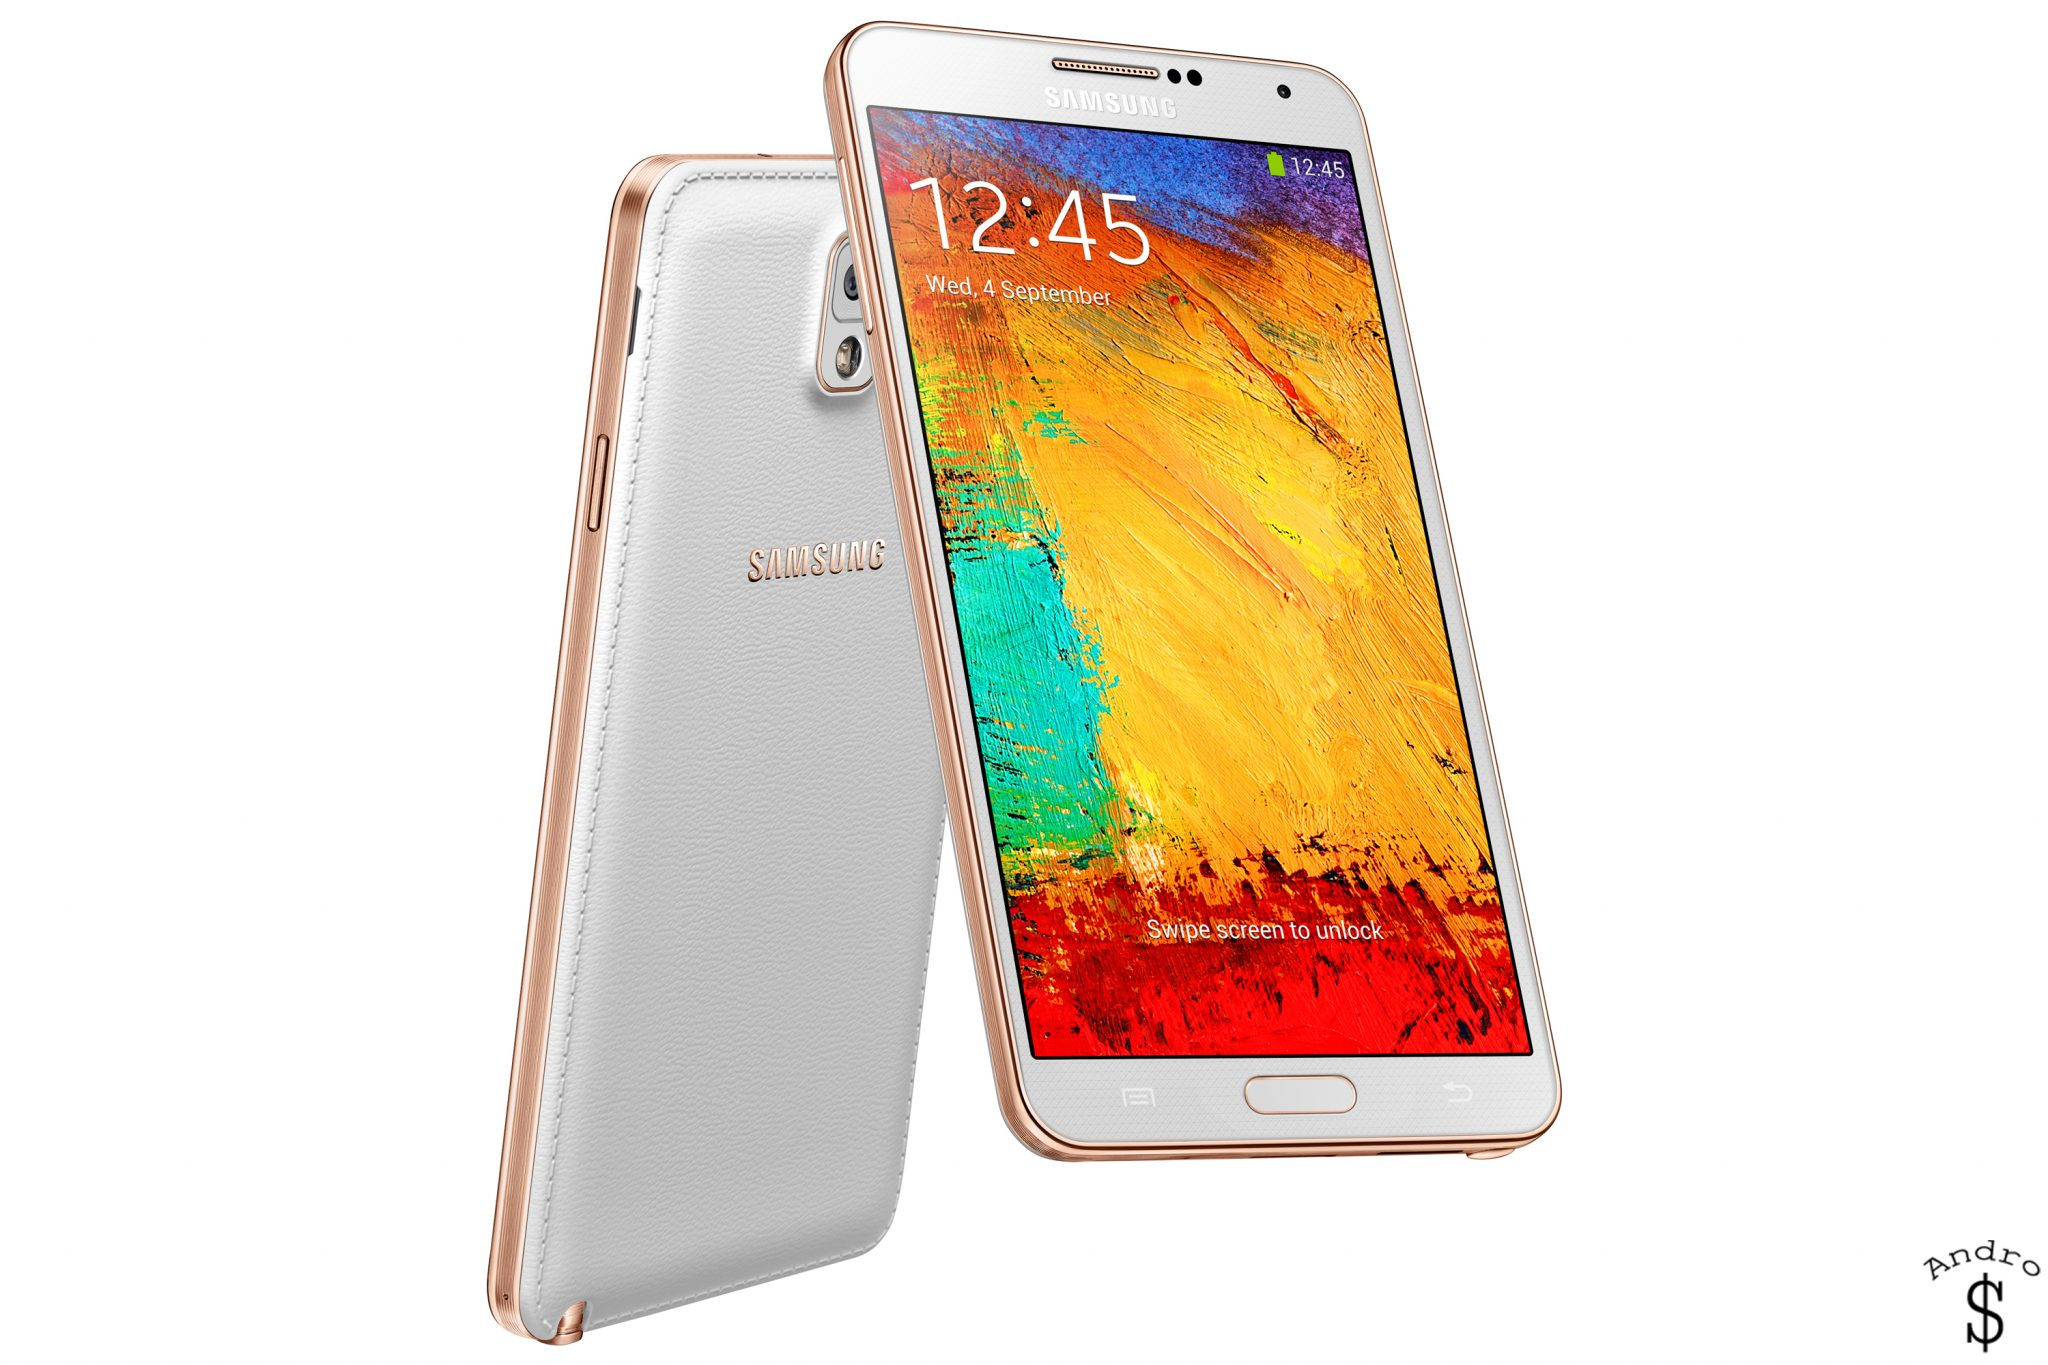 The Gold Variant of the Galaxy Note 3